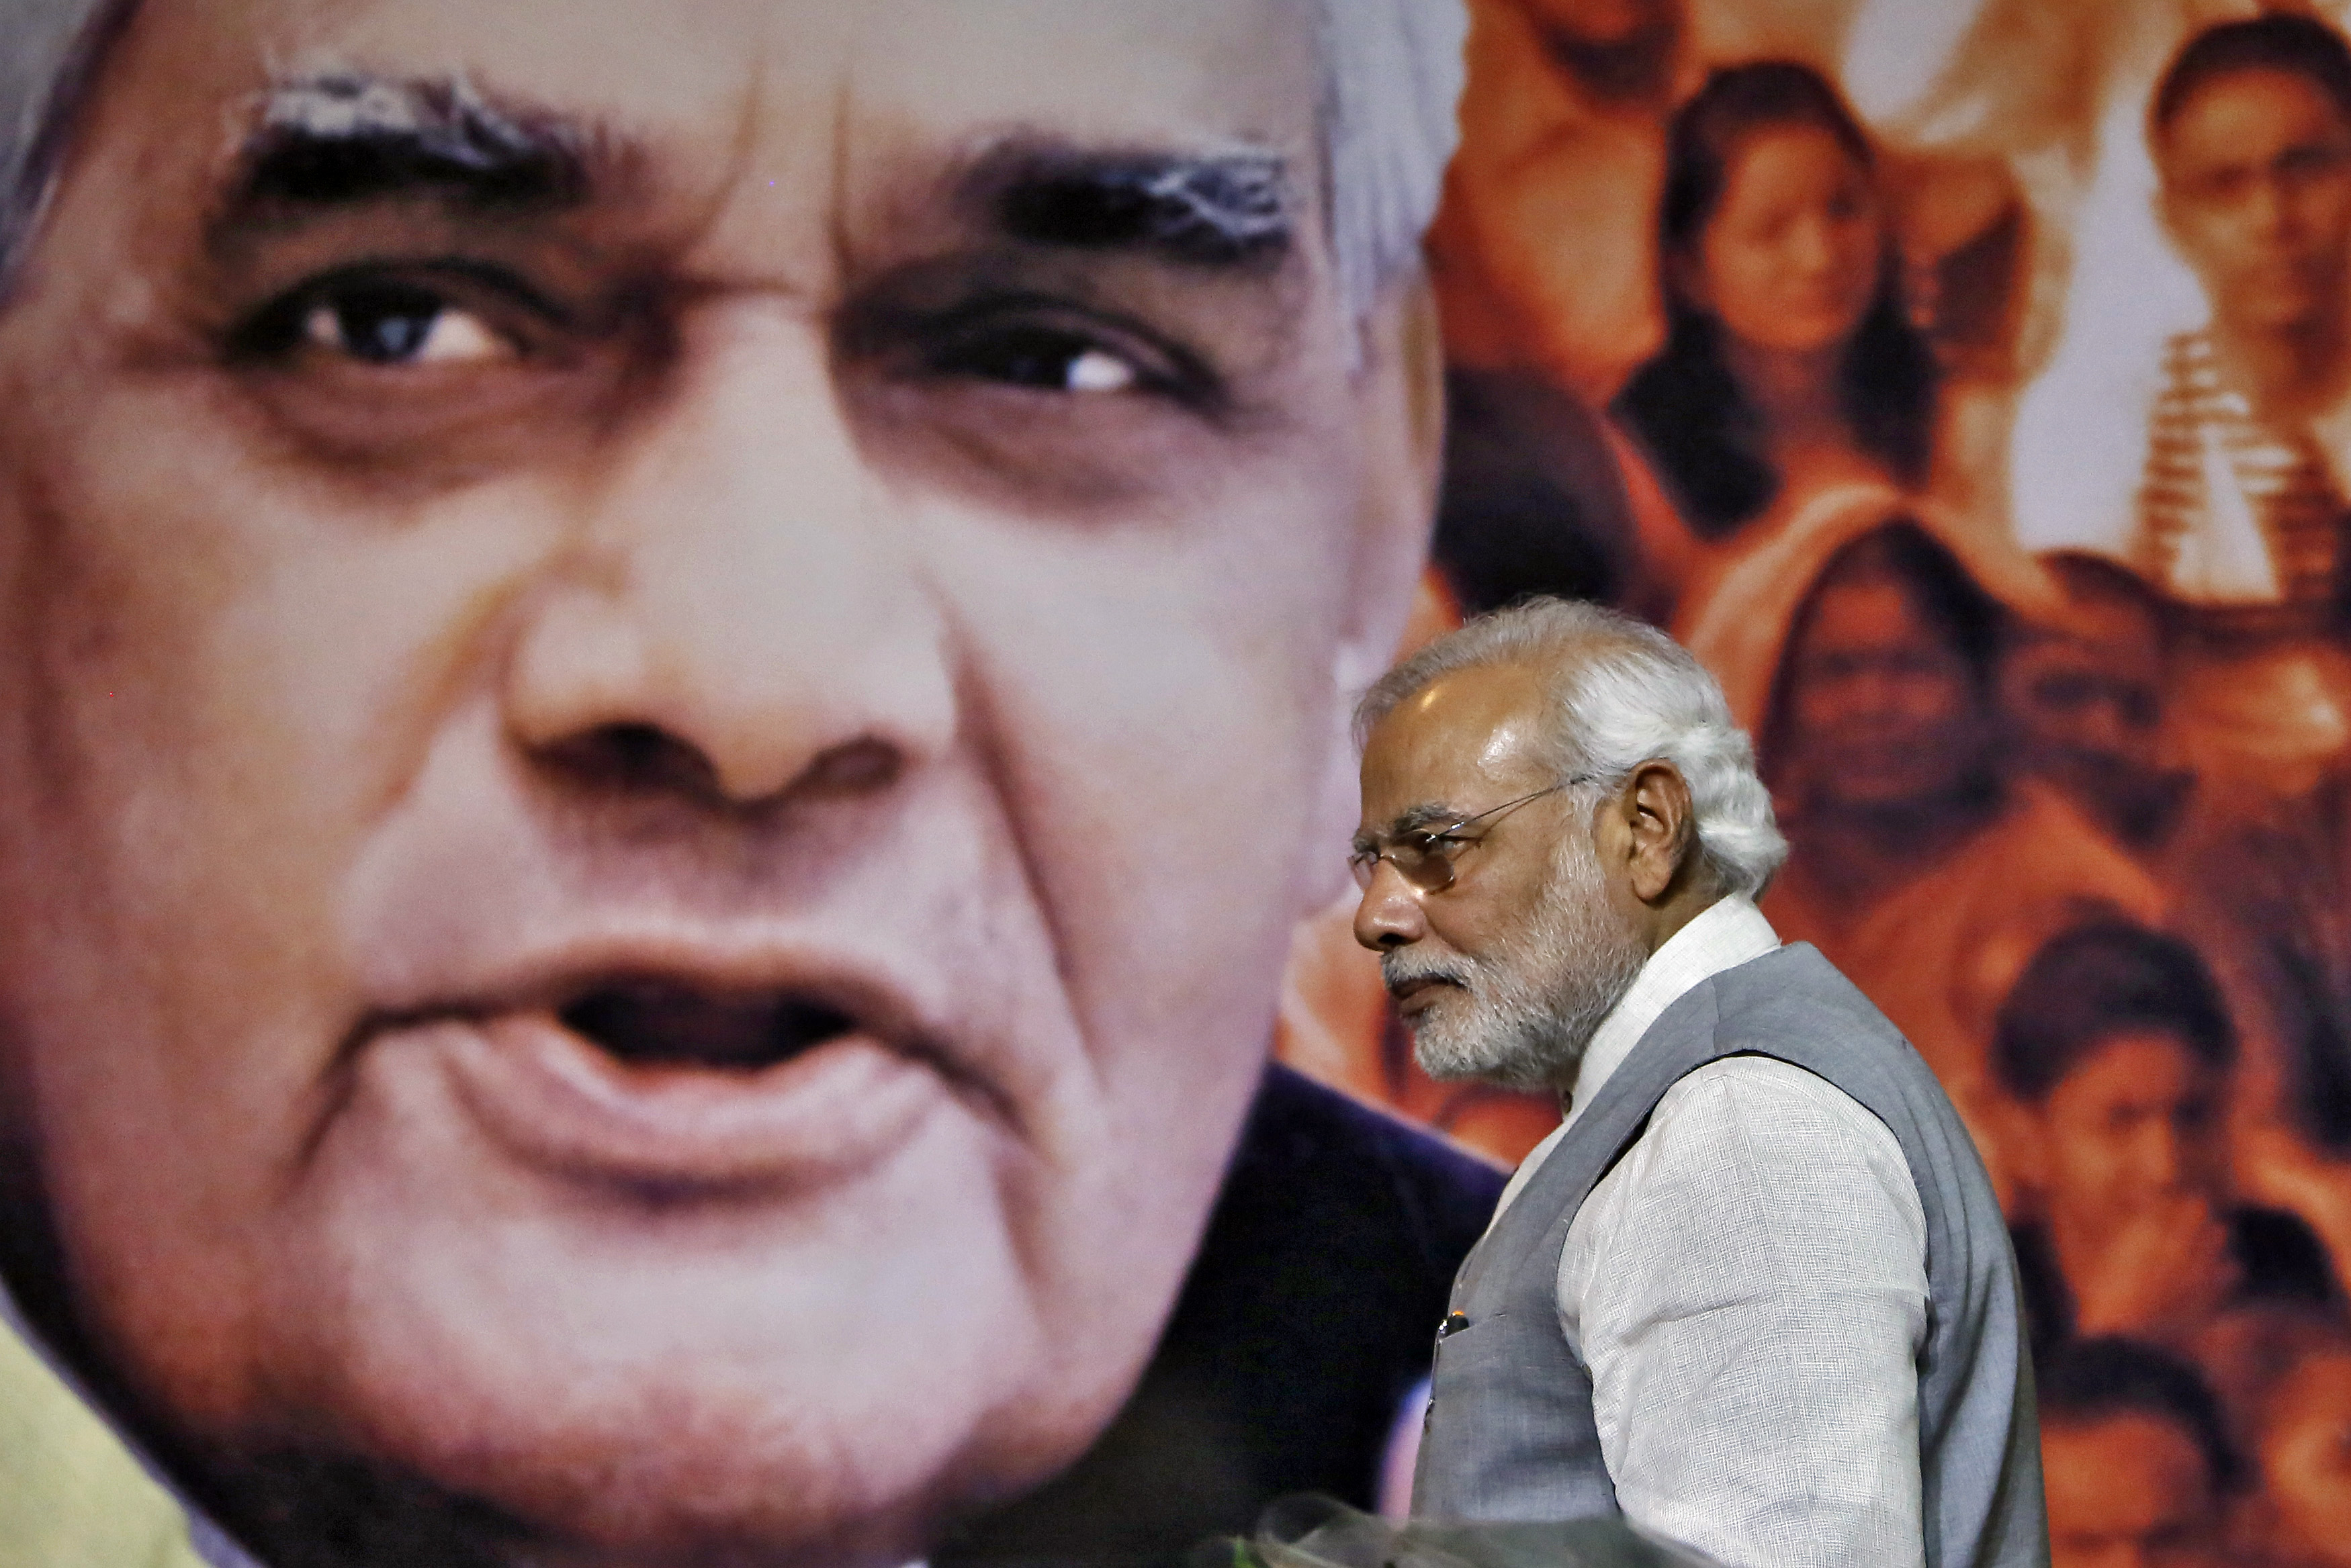 Indian Prime Minister Narendra Modi walks in front of a picture of former Indian Prime Minister Atal Bihari Vajpayee after a news conference in New Delhi on July 9, 2014.